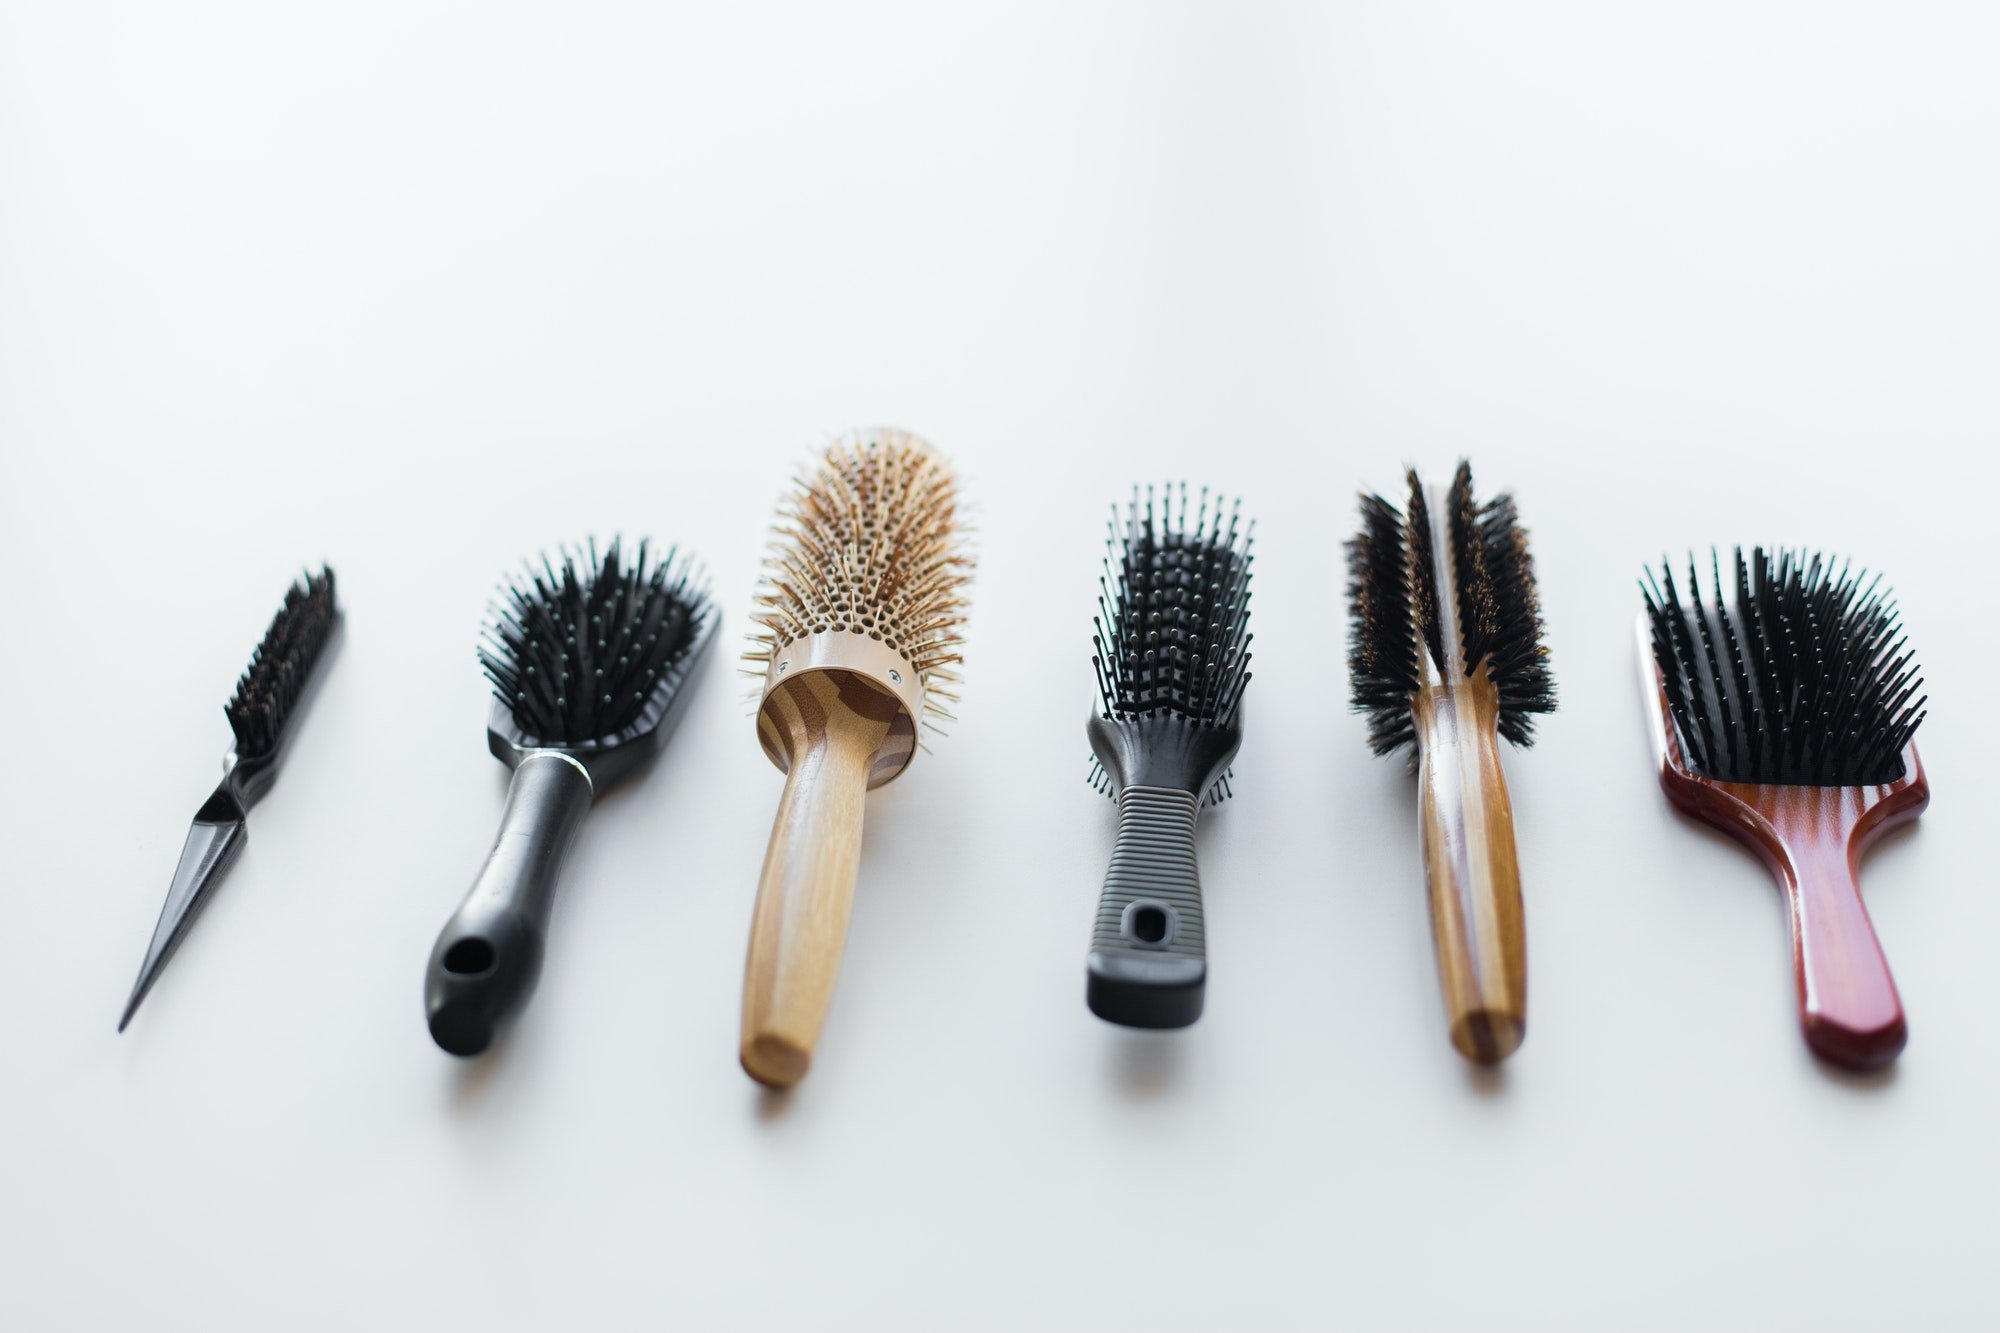 different hair brushes or combs